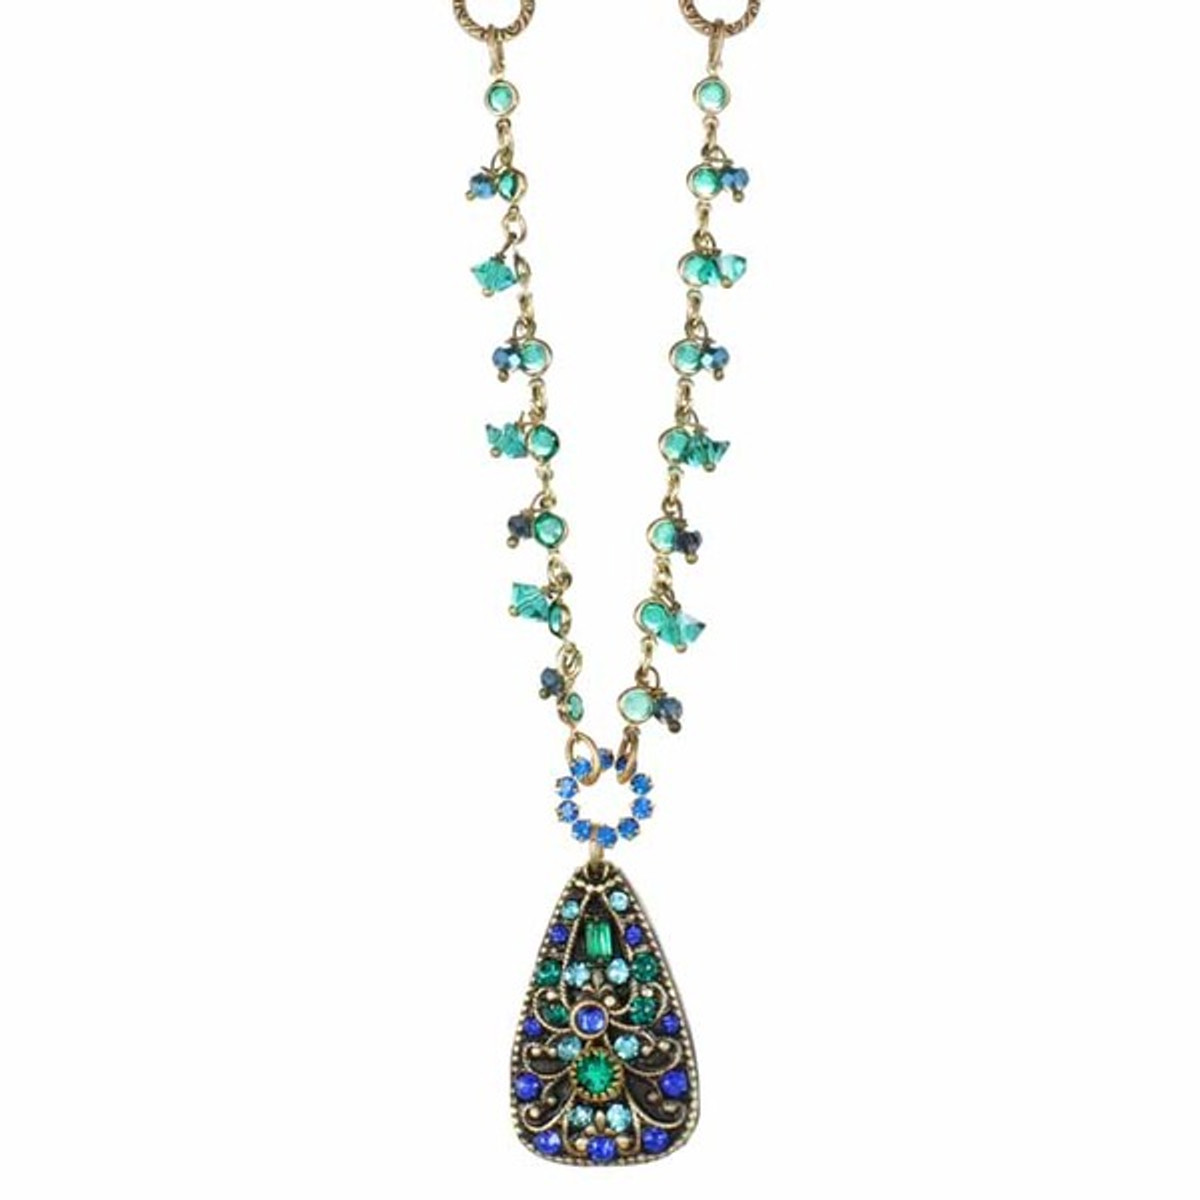 Peacock Necklace From Michal Golan Jewelry